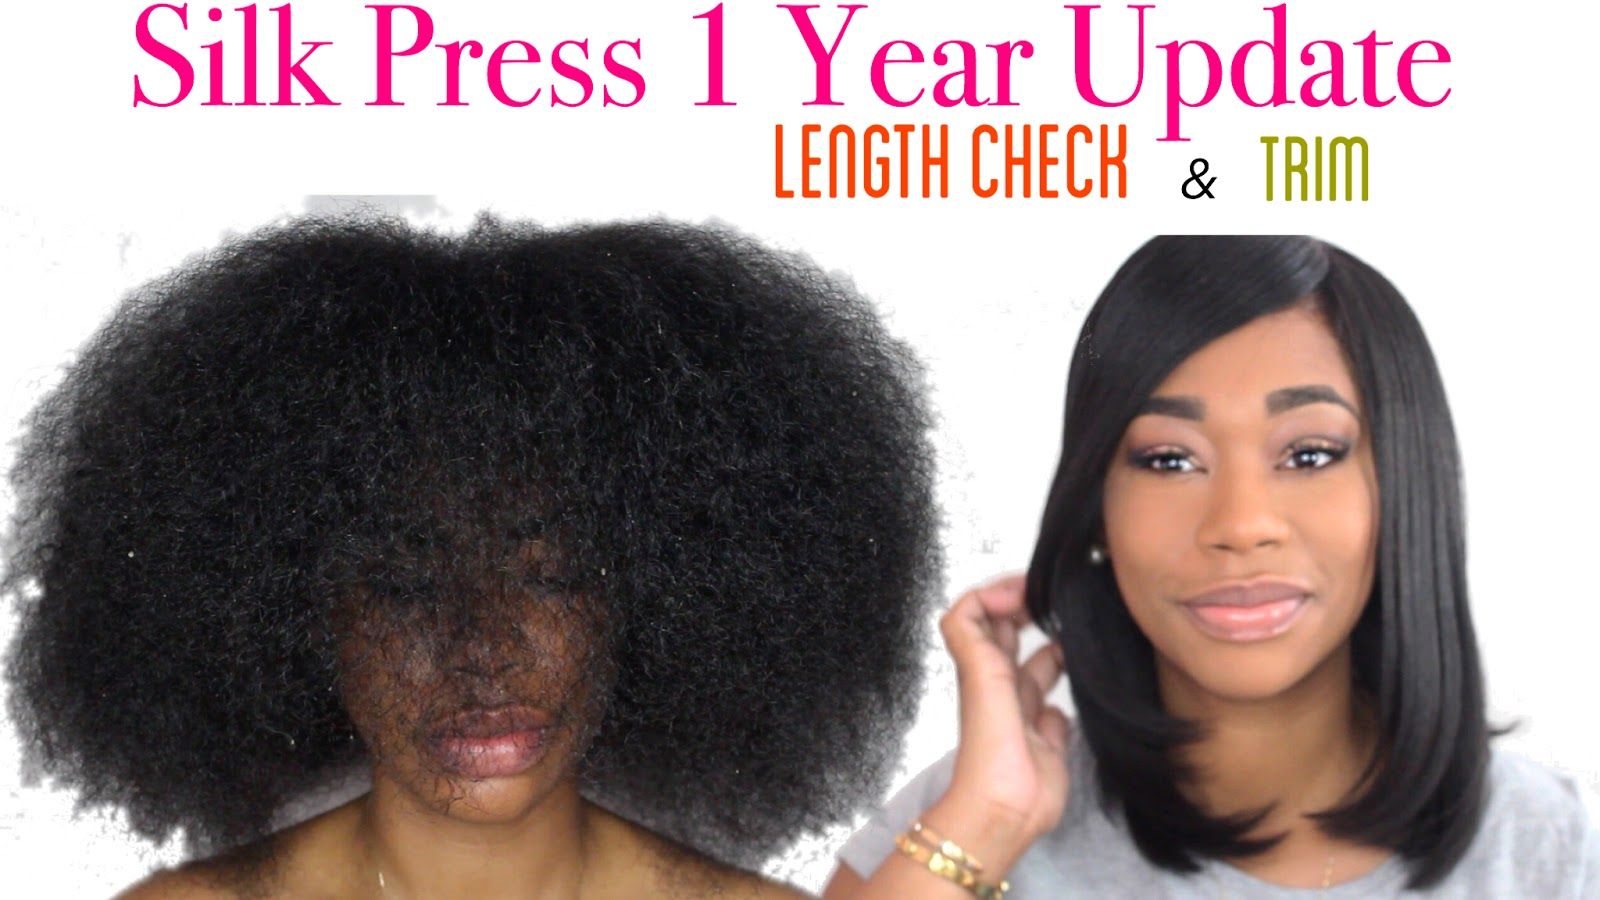 Silk Press: How to Trim, And Wrap My Natural Hair Tutorial